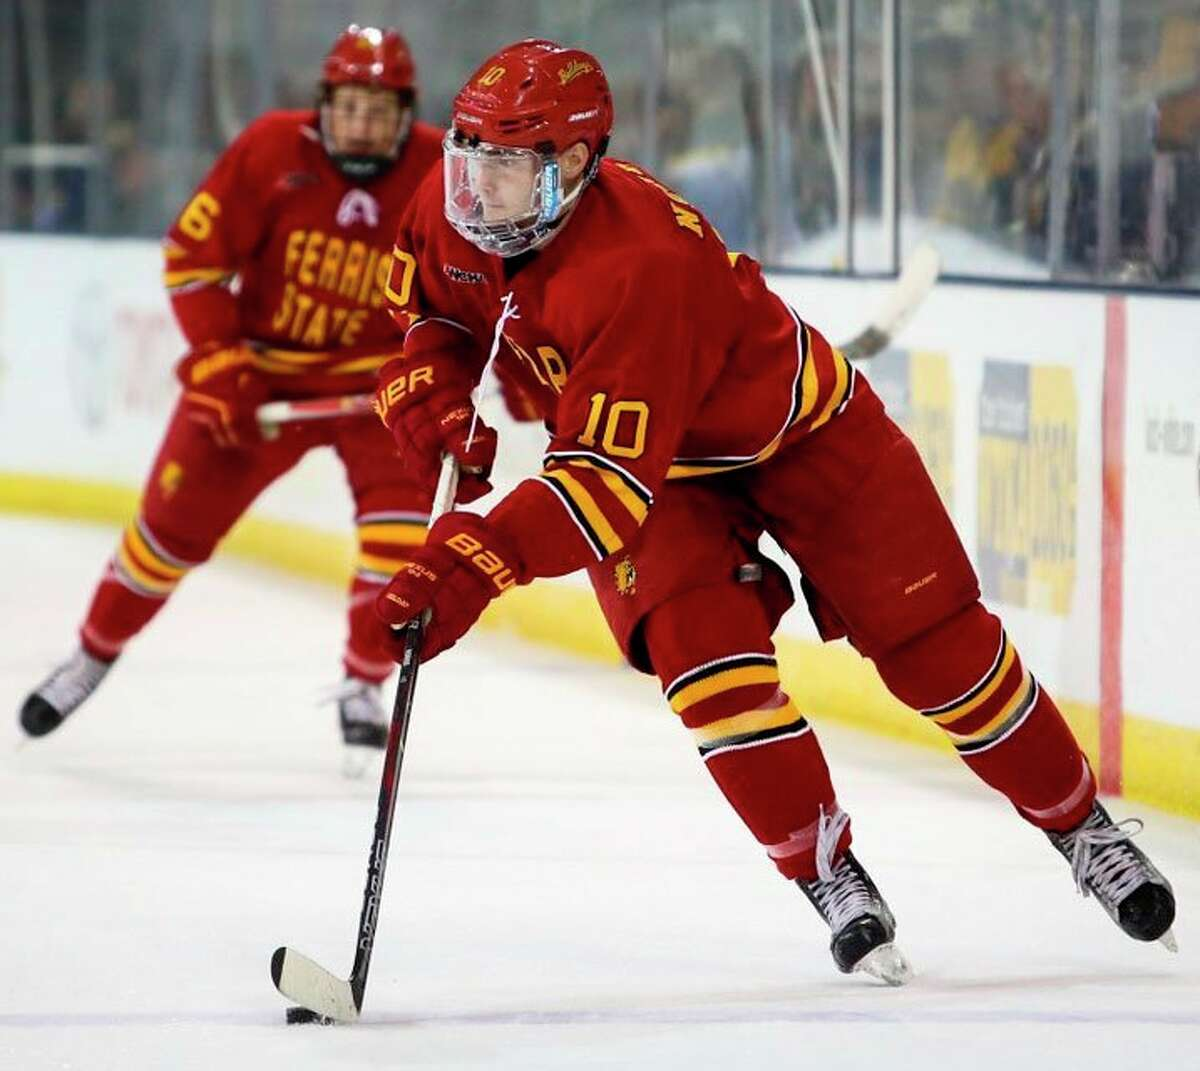 Coale Norris has transferred from Ferris hockey to Bowling Green. (Pioneer file photo)